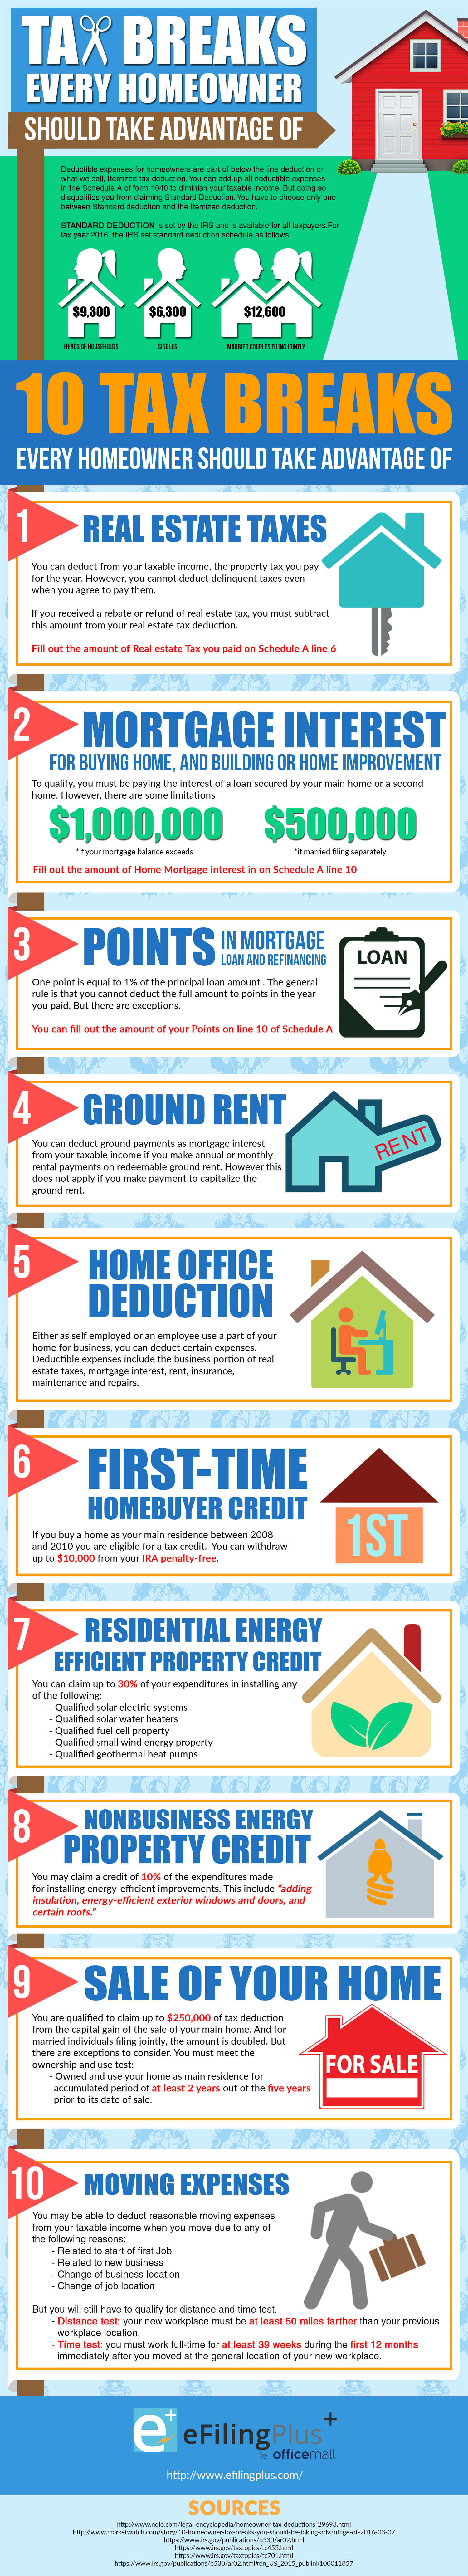 Tax-Breaks-Every-Homeowner-should-Take-Advantage-Of-infographic-plaza